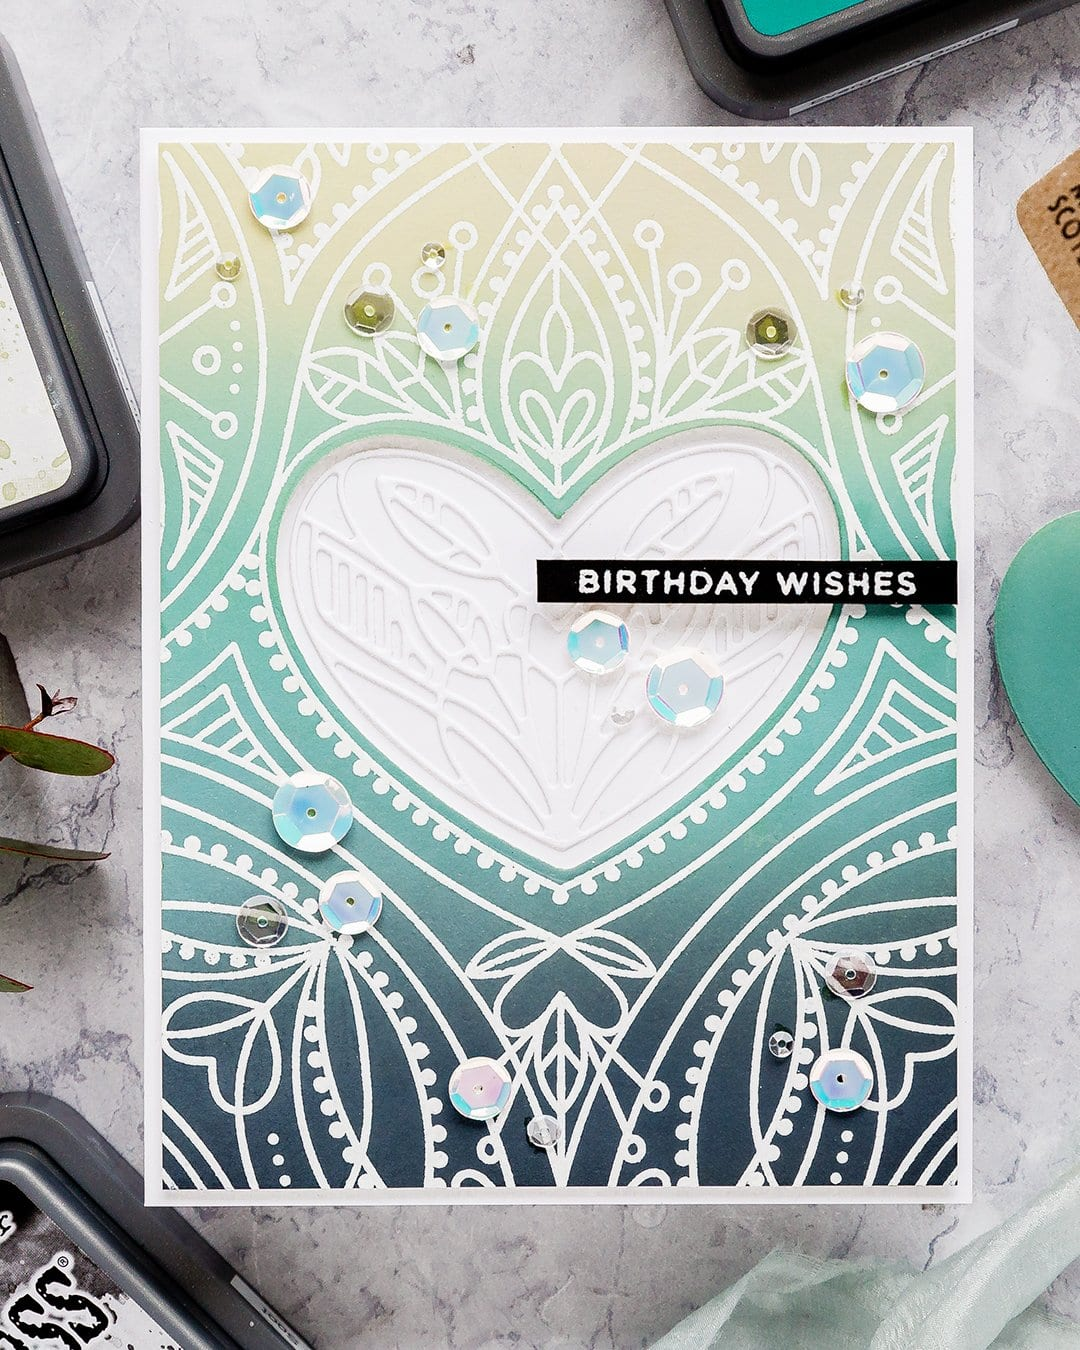 Video - Distress Oxide blending inspired by Kristina Werner's series. Handmade birthday card by Debby Hughes using supplies from Simon Says Stamp. Find out more here: https://limedoodledesign.com/2019/03/video-blended-distress-oxide-background/